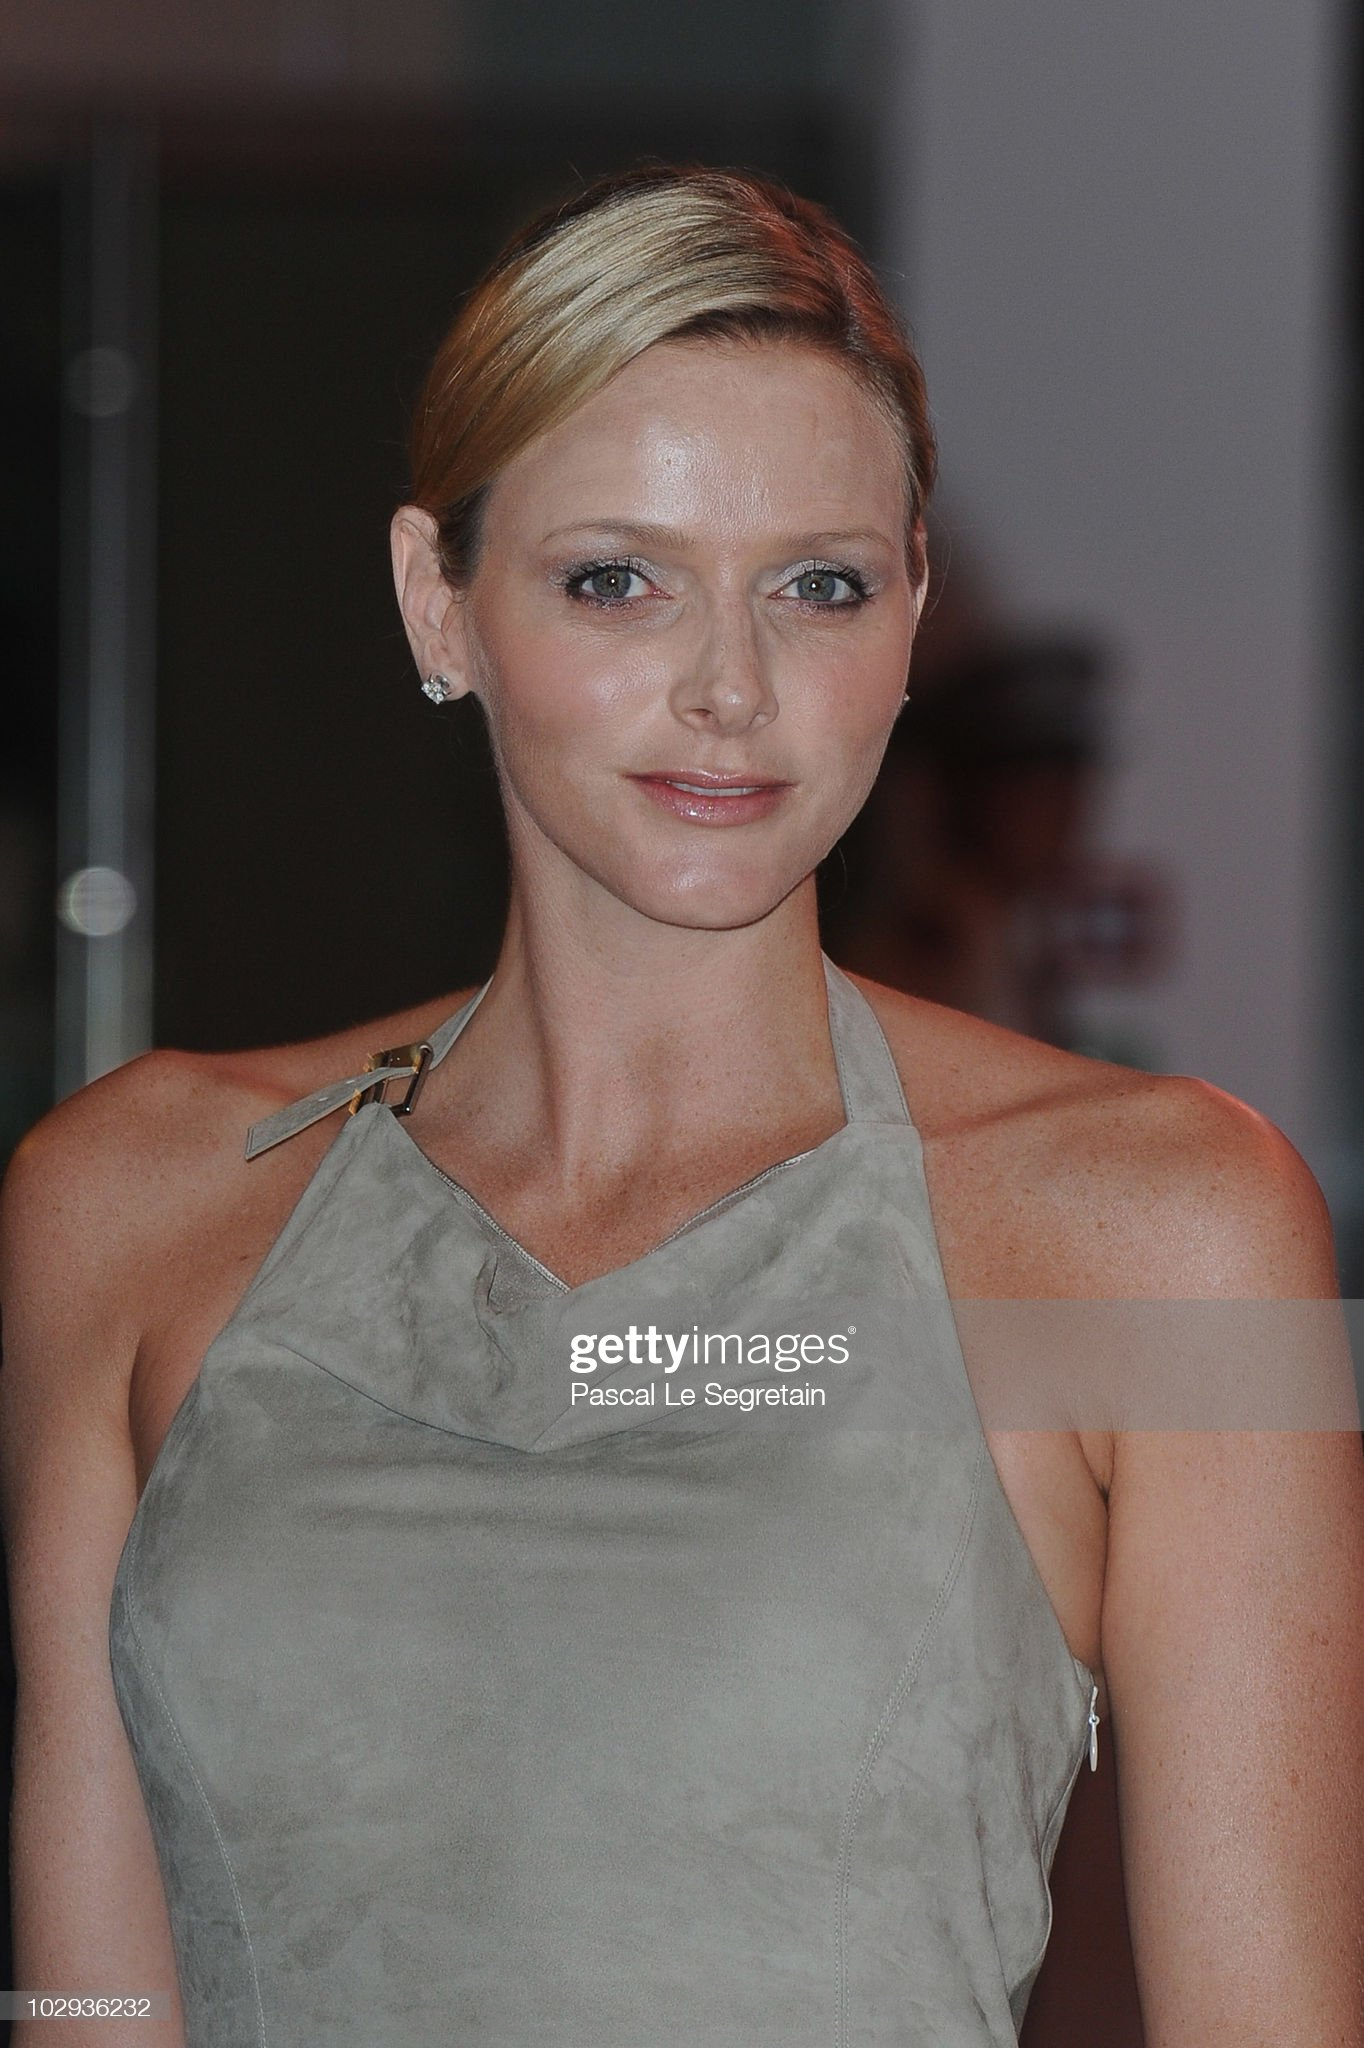 2010 Annual FightAIDS Monaco Gala Press Conference - Dinner : News Photo